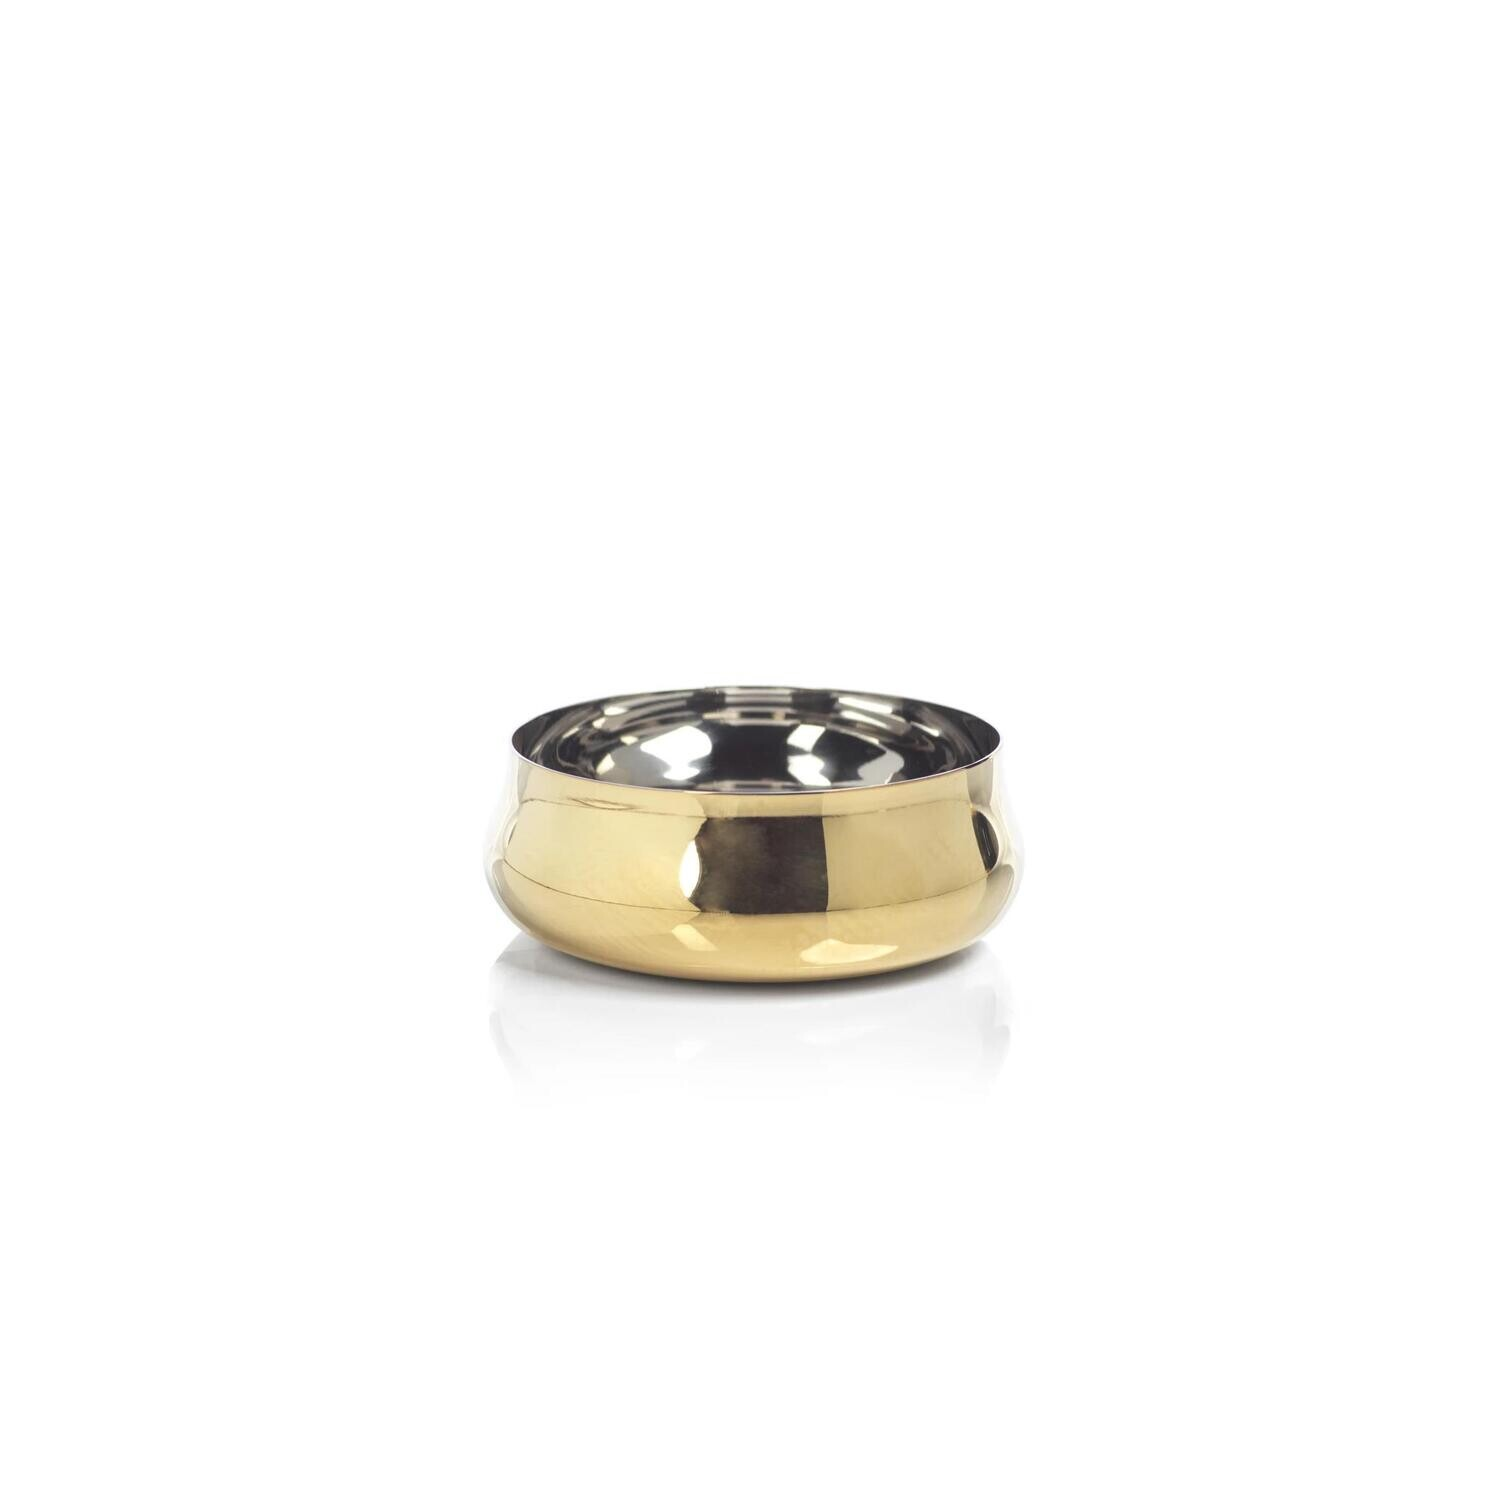 Stainless Steel Nut Bowl- Gd